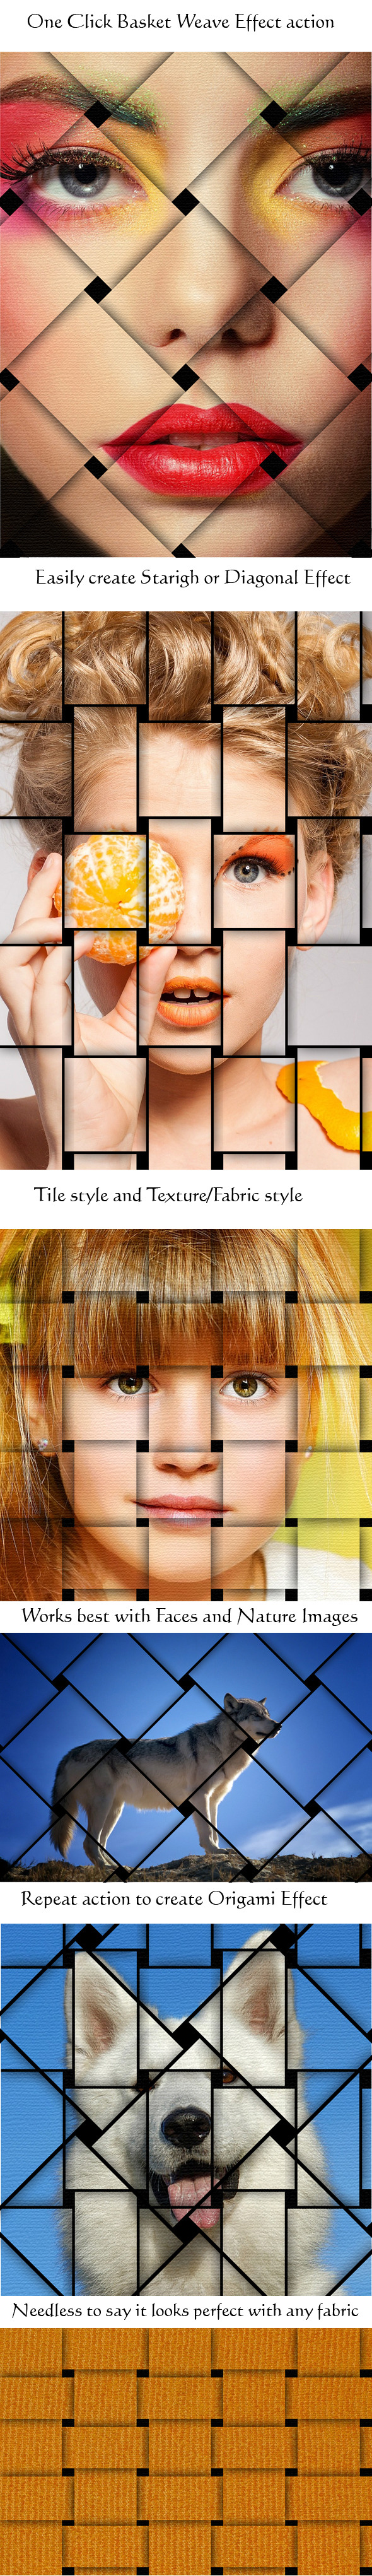 How To Make A Basket Weave Effect : Basket weave effect by metromusic graphicriver